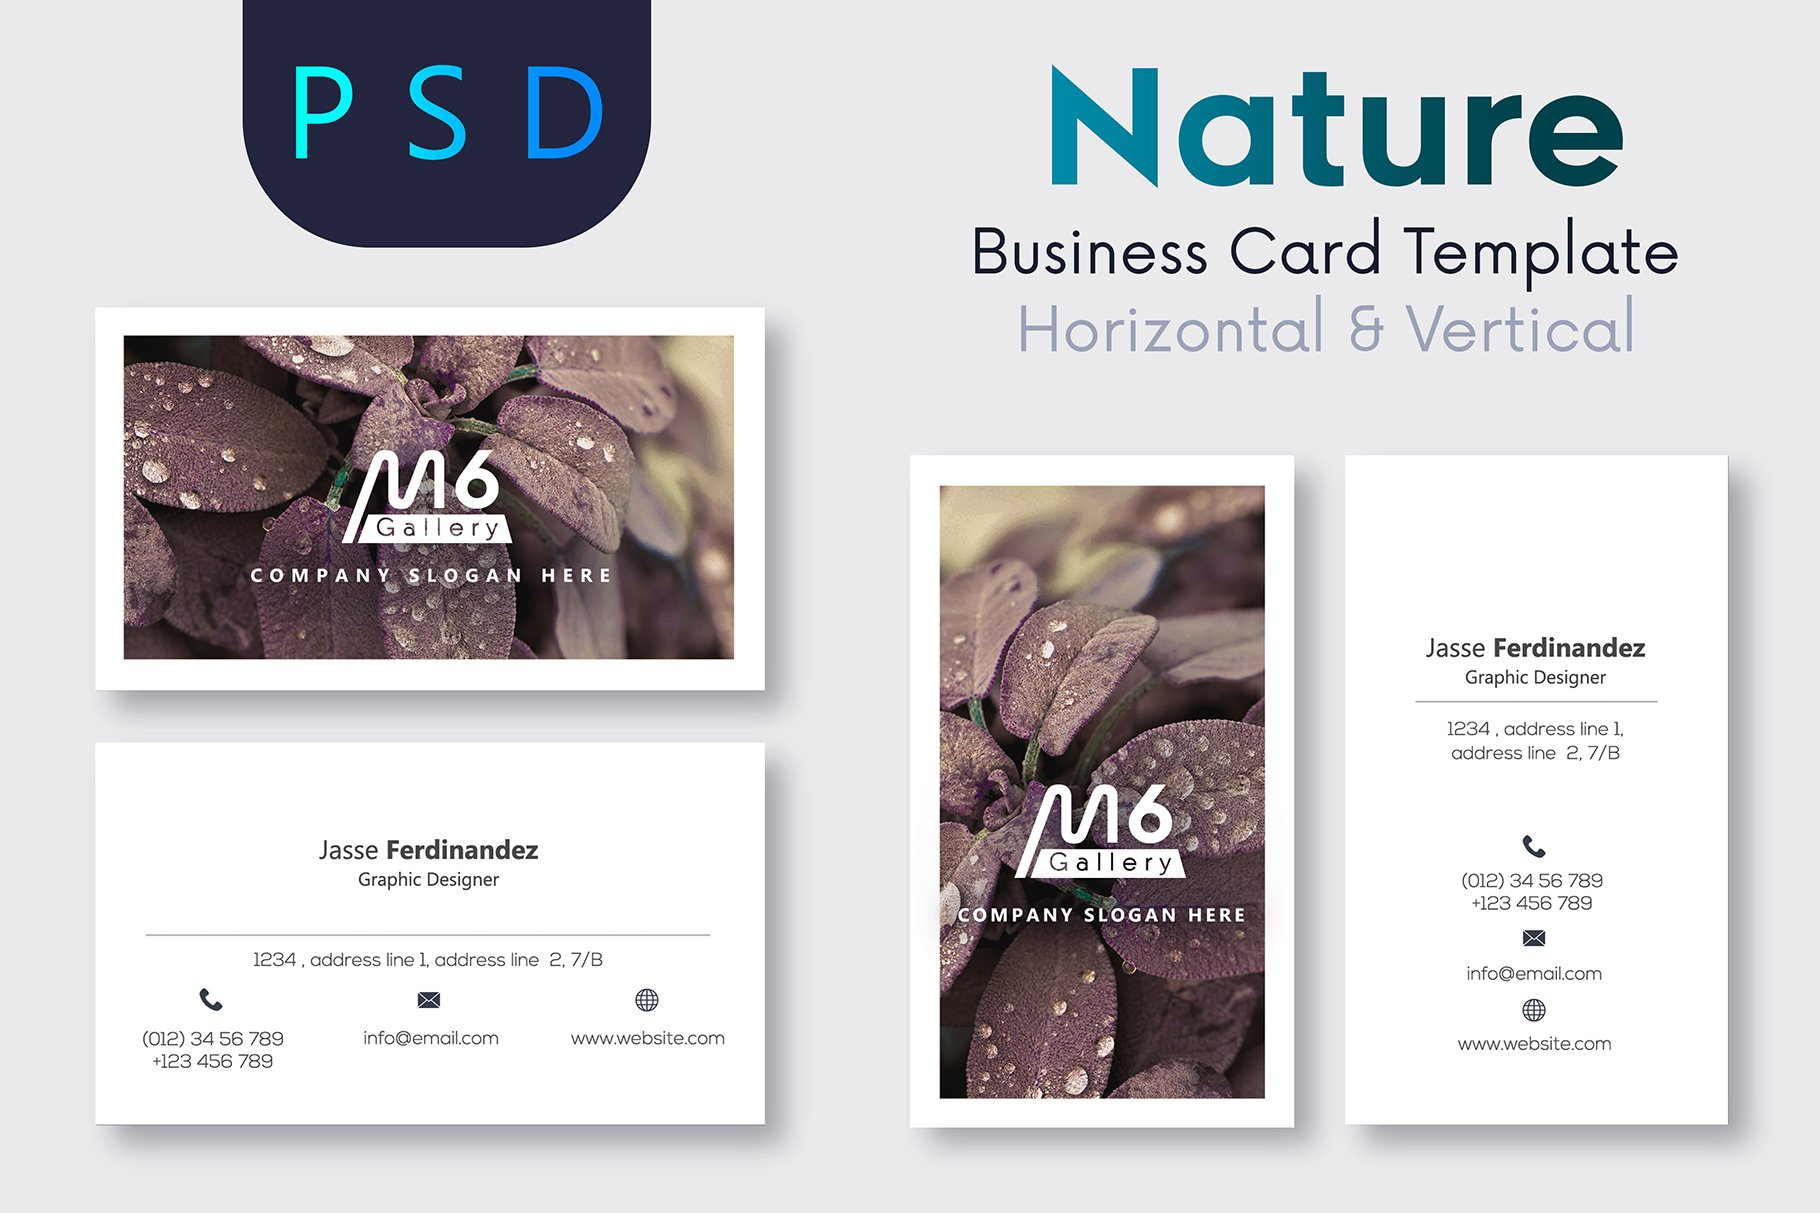 Nature business card template s51 business card templates nature business card template s51 business card templates creative market reheart Images